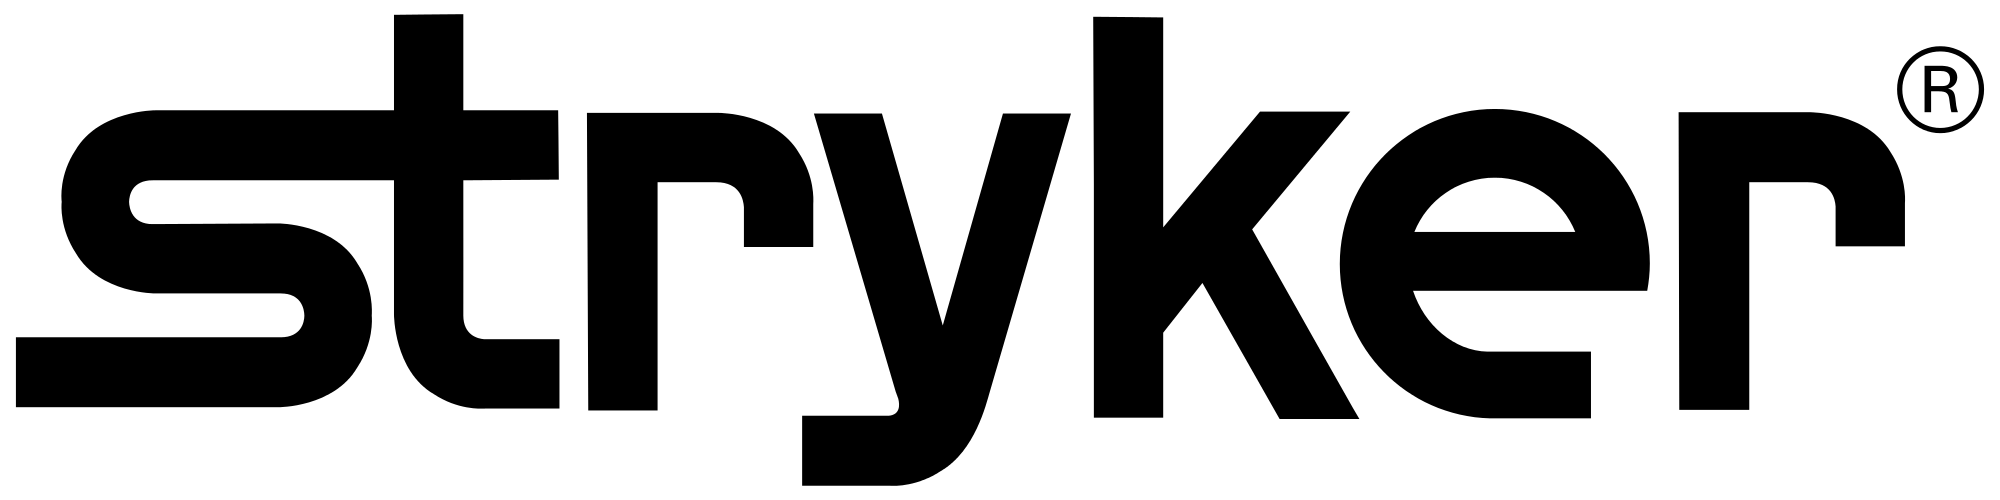 Stryker_Corporation_logo